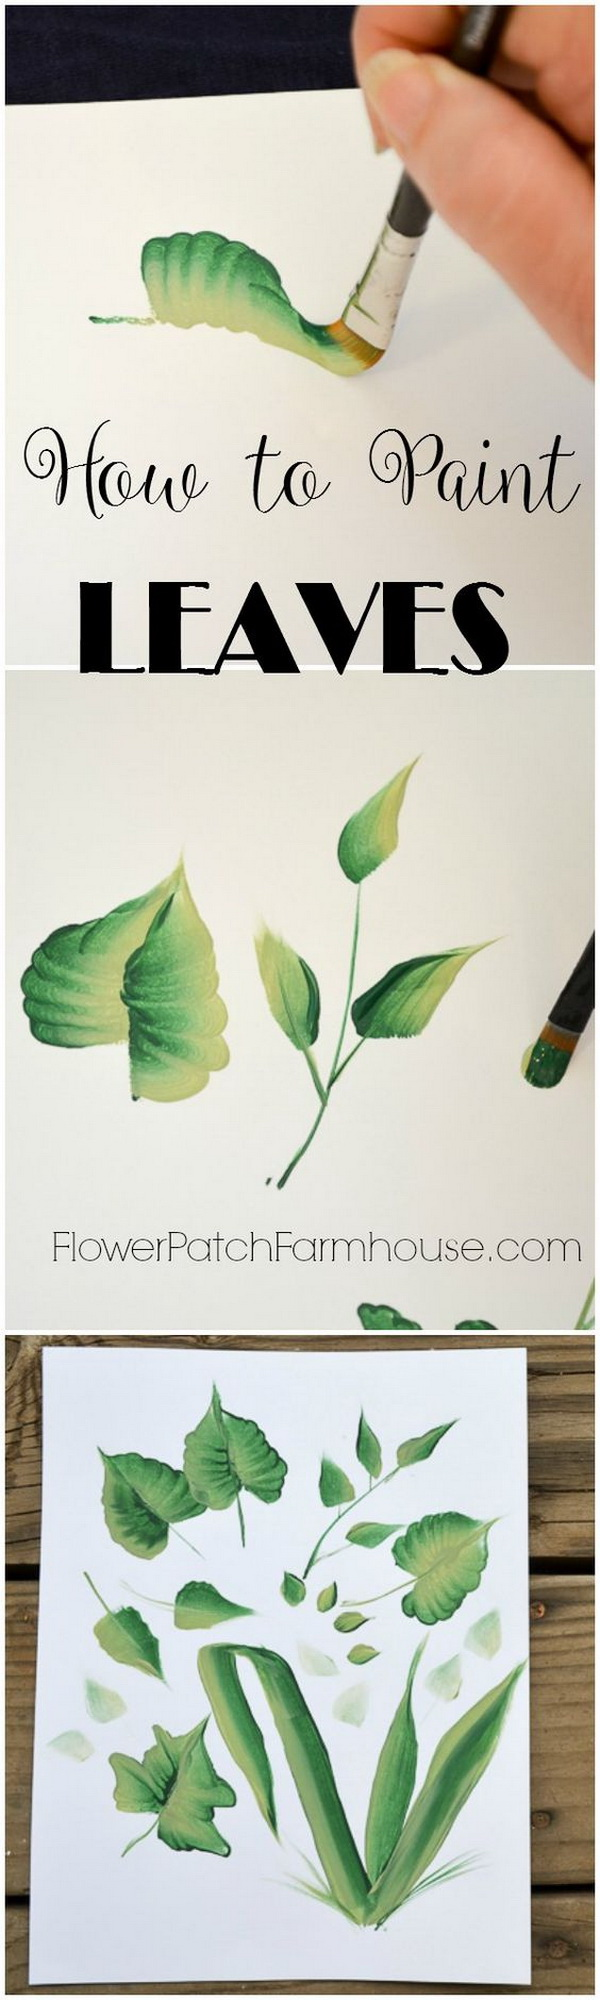 Simple Painted Leaves Wall Art. Leaves are an important part of painting art. If you are good at painting, try this project out and make a bright, modern wall art.